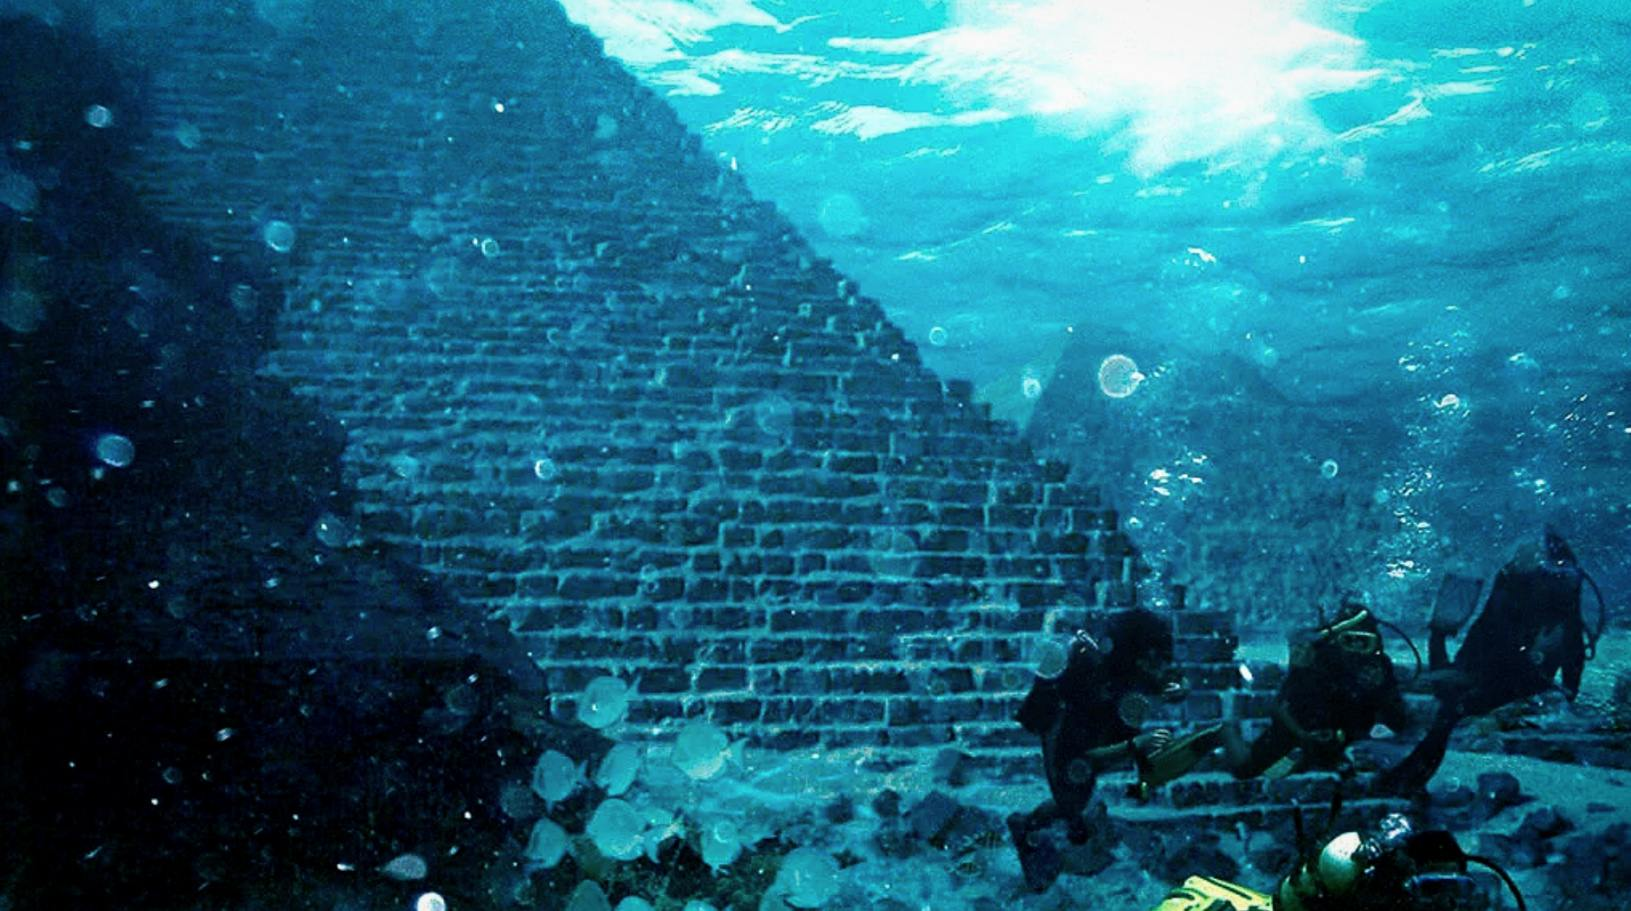 Immense Underwater Pyramid In Portugal Could Be The Missing Link Of Atlantis